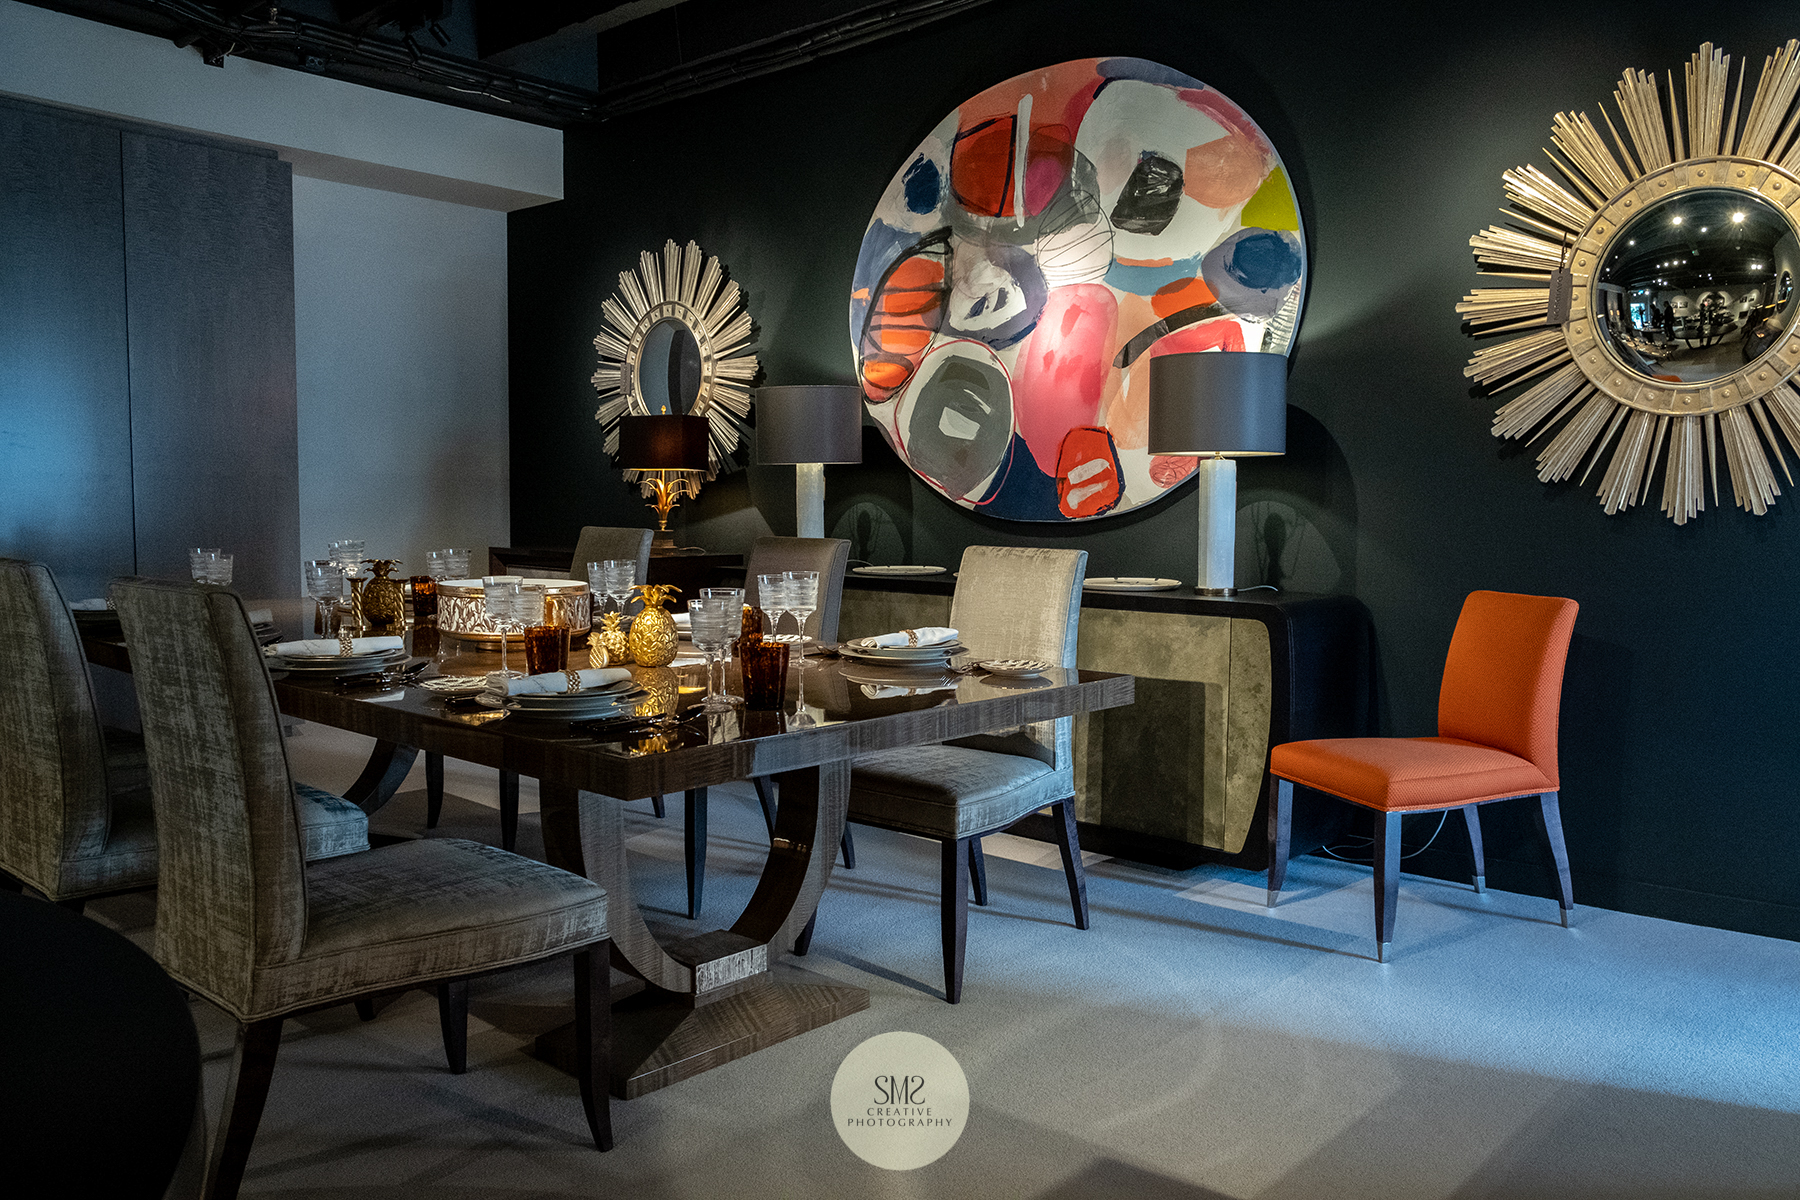 'Davidson' British bespoke craftsmanship, I adore the colours and design in this showroom